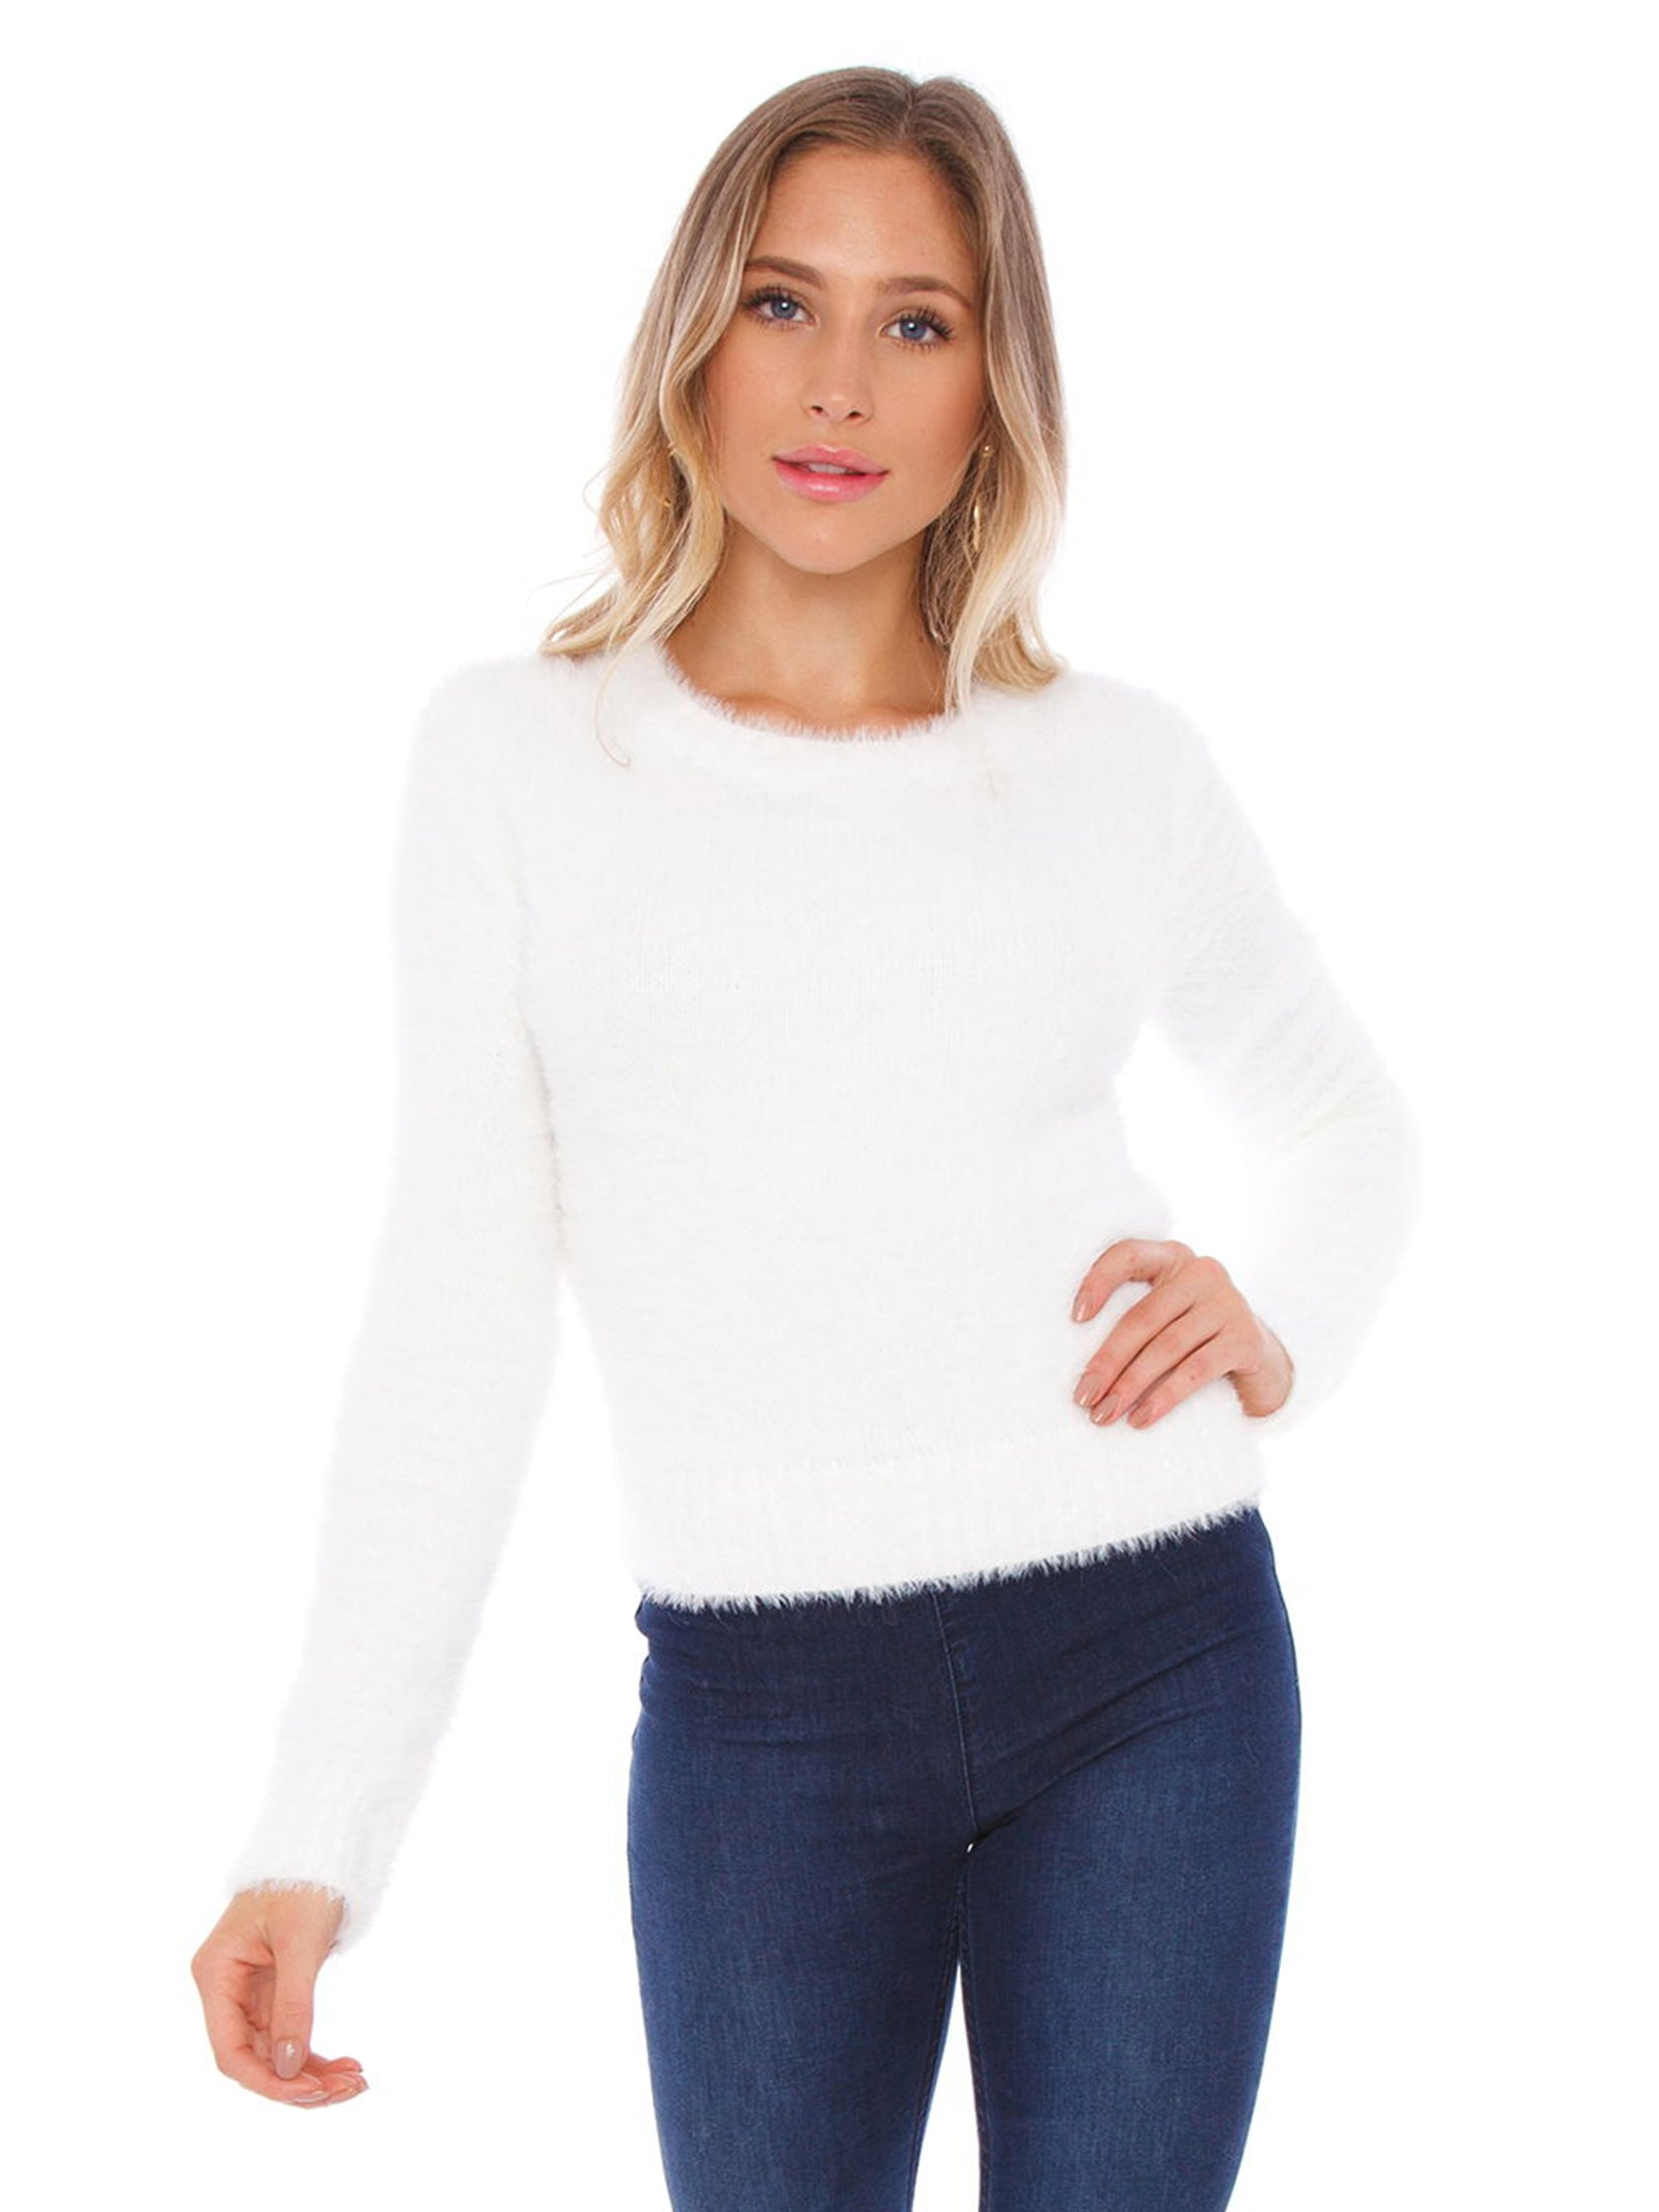 Woman wearing a sweater rental from FASHIONPASS called White As Snow Sweater